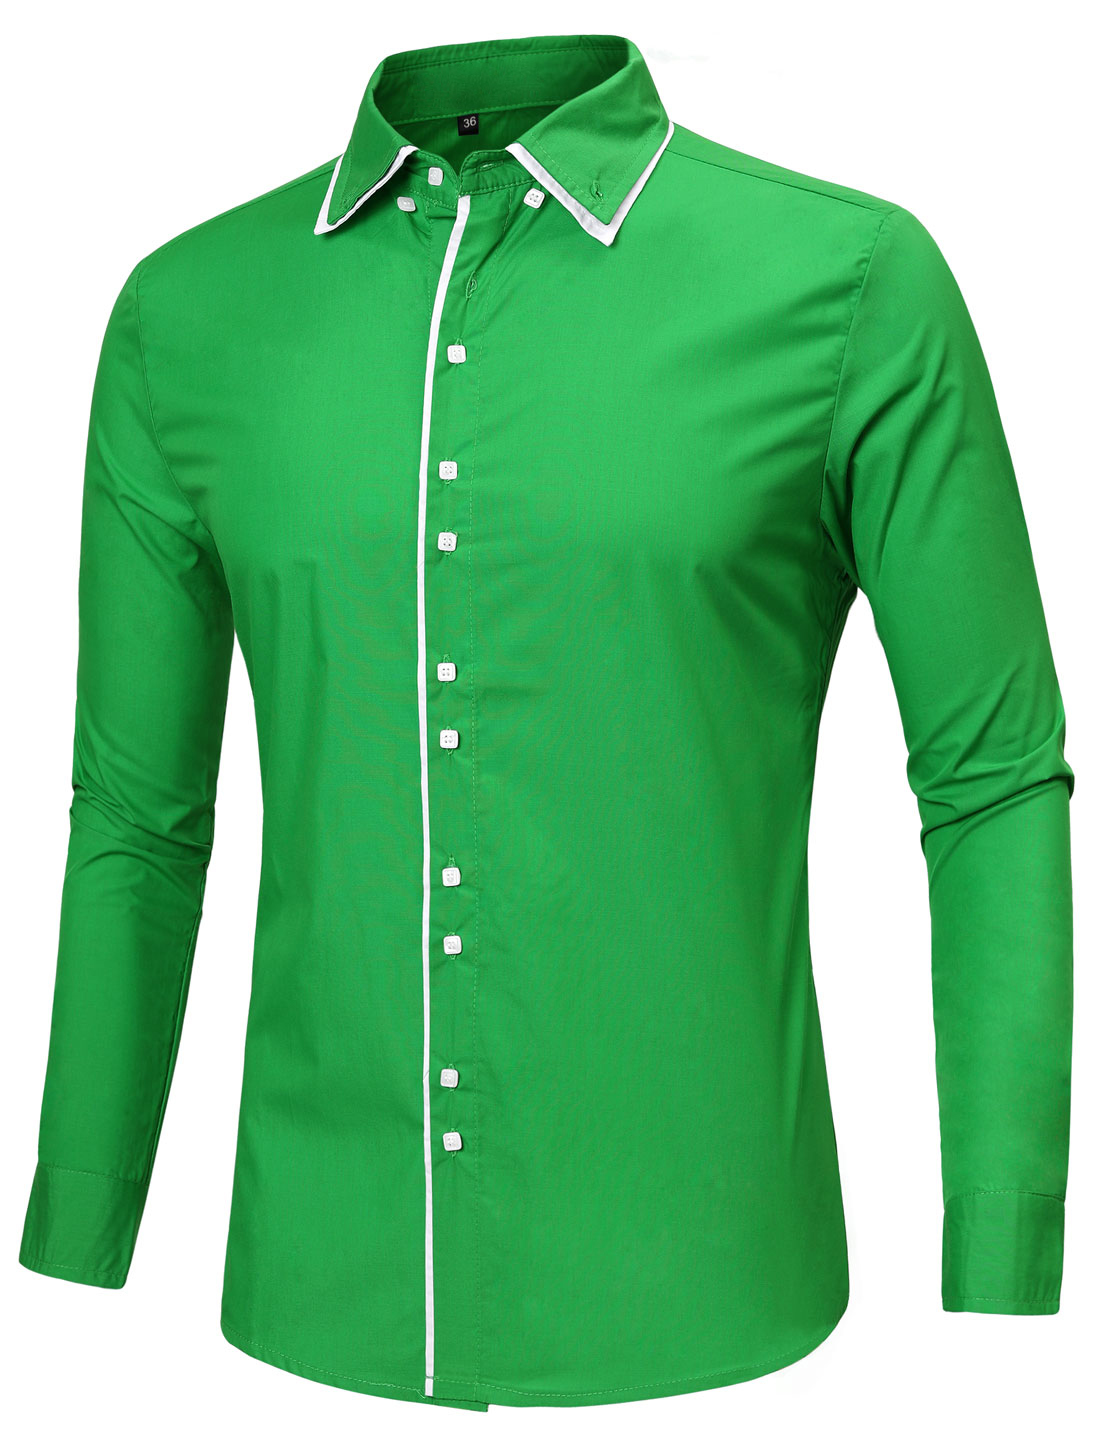 Men Tiered Point Collar Long Sleeve Single Breasted Shirt Bright Green M